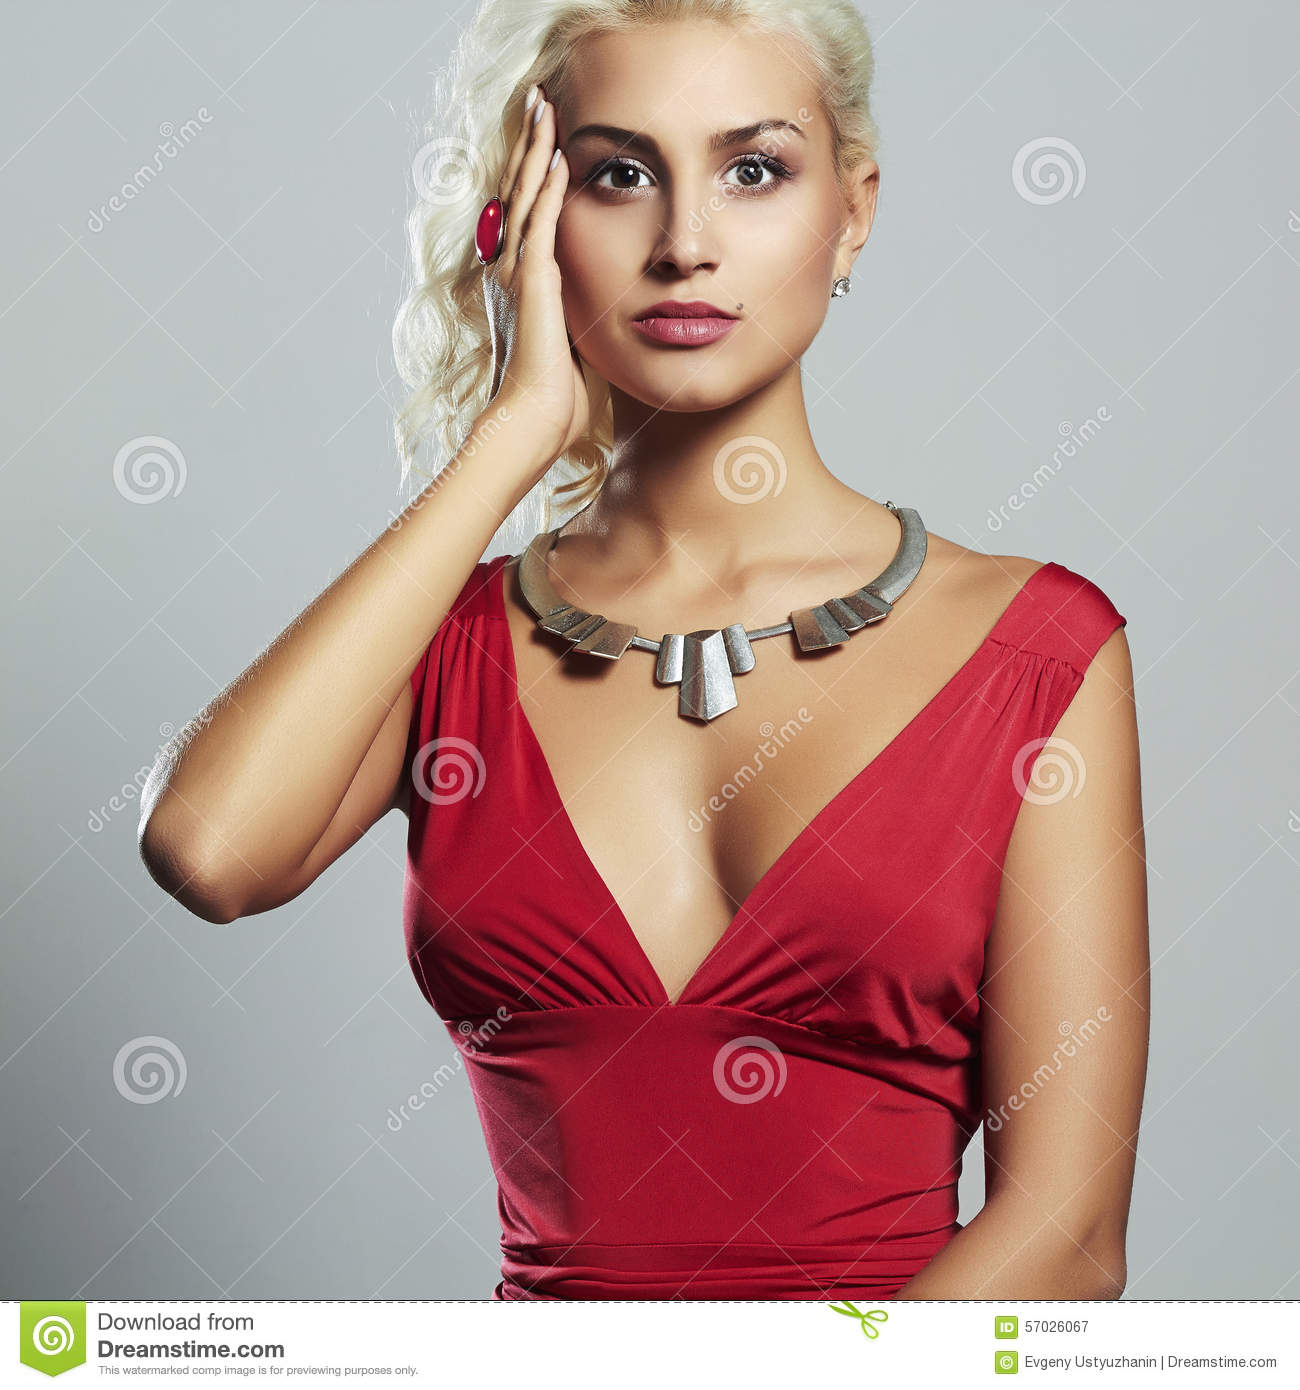 Young beautiful woman.Sexy body Blond girl.red dress